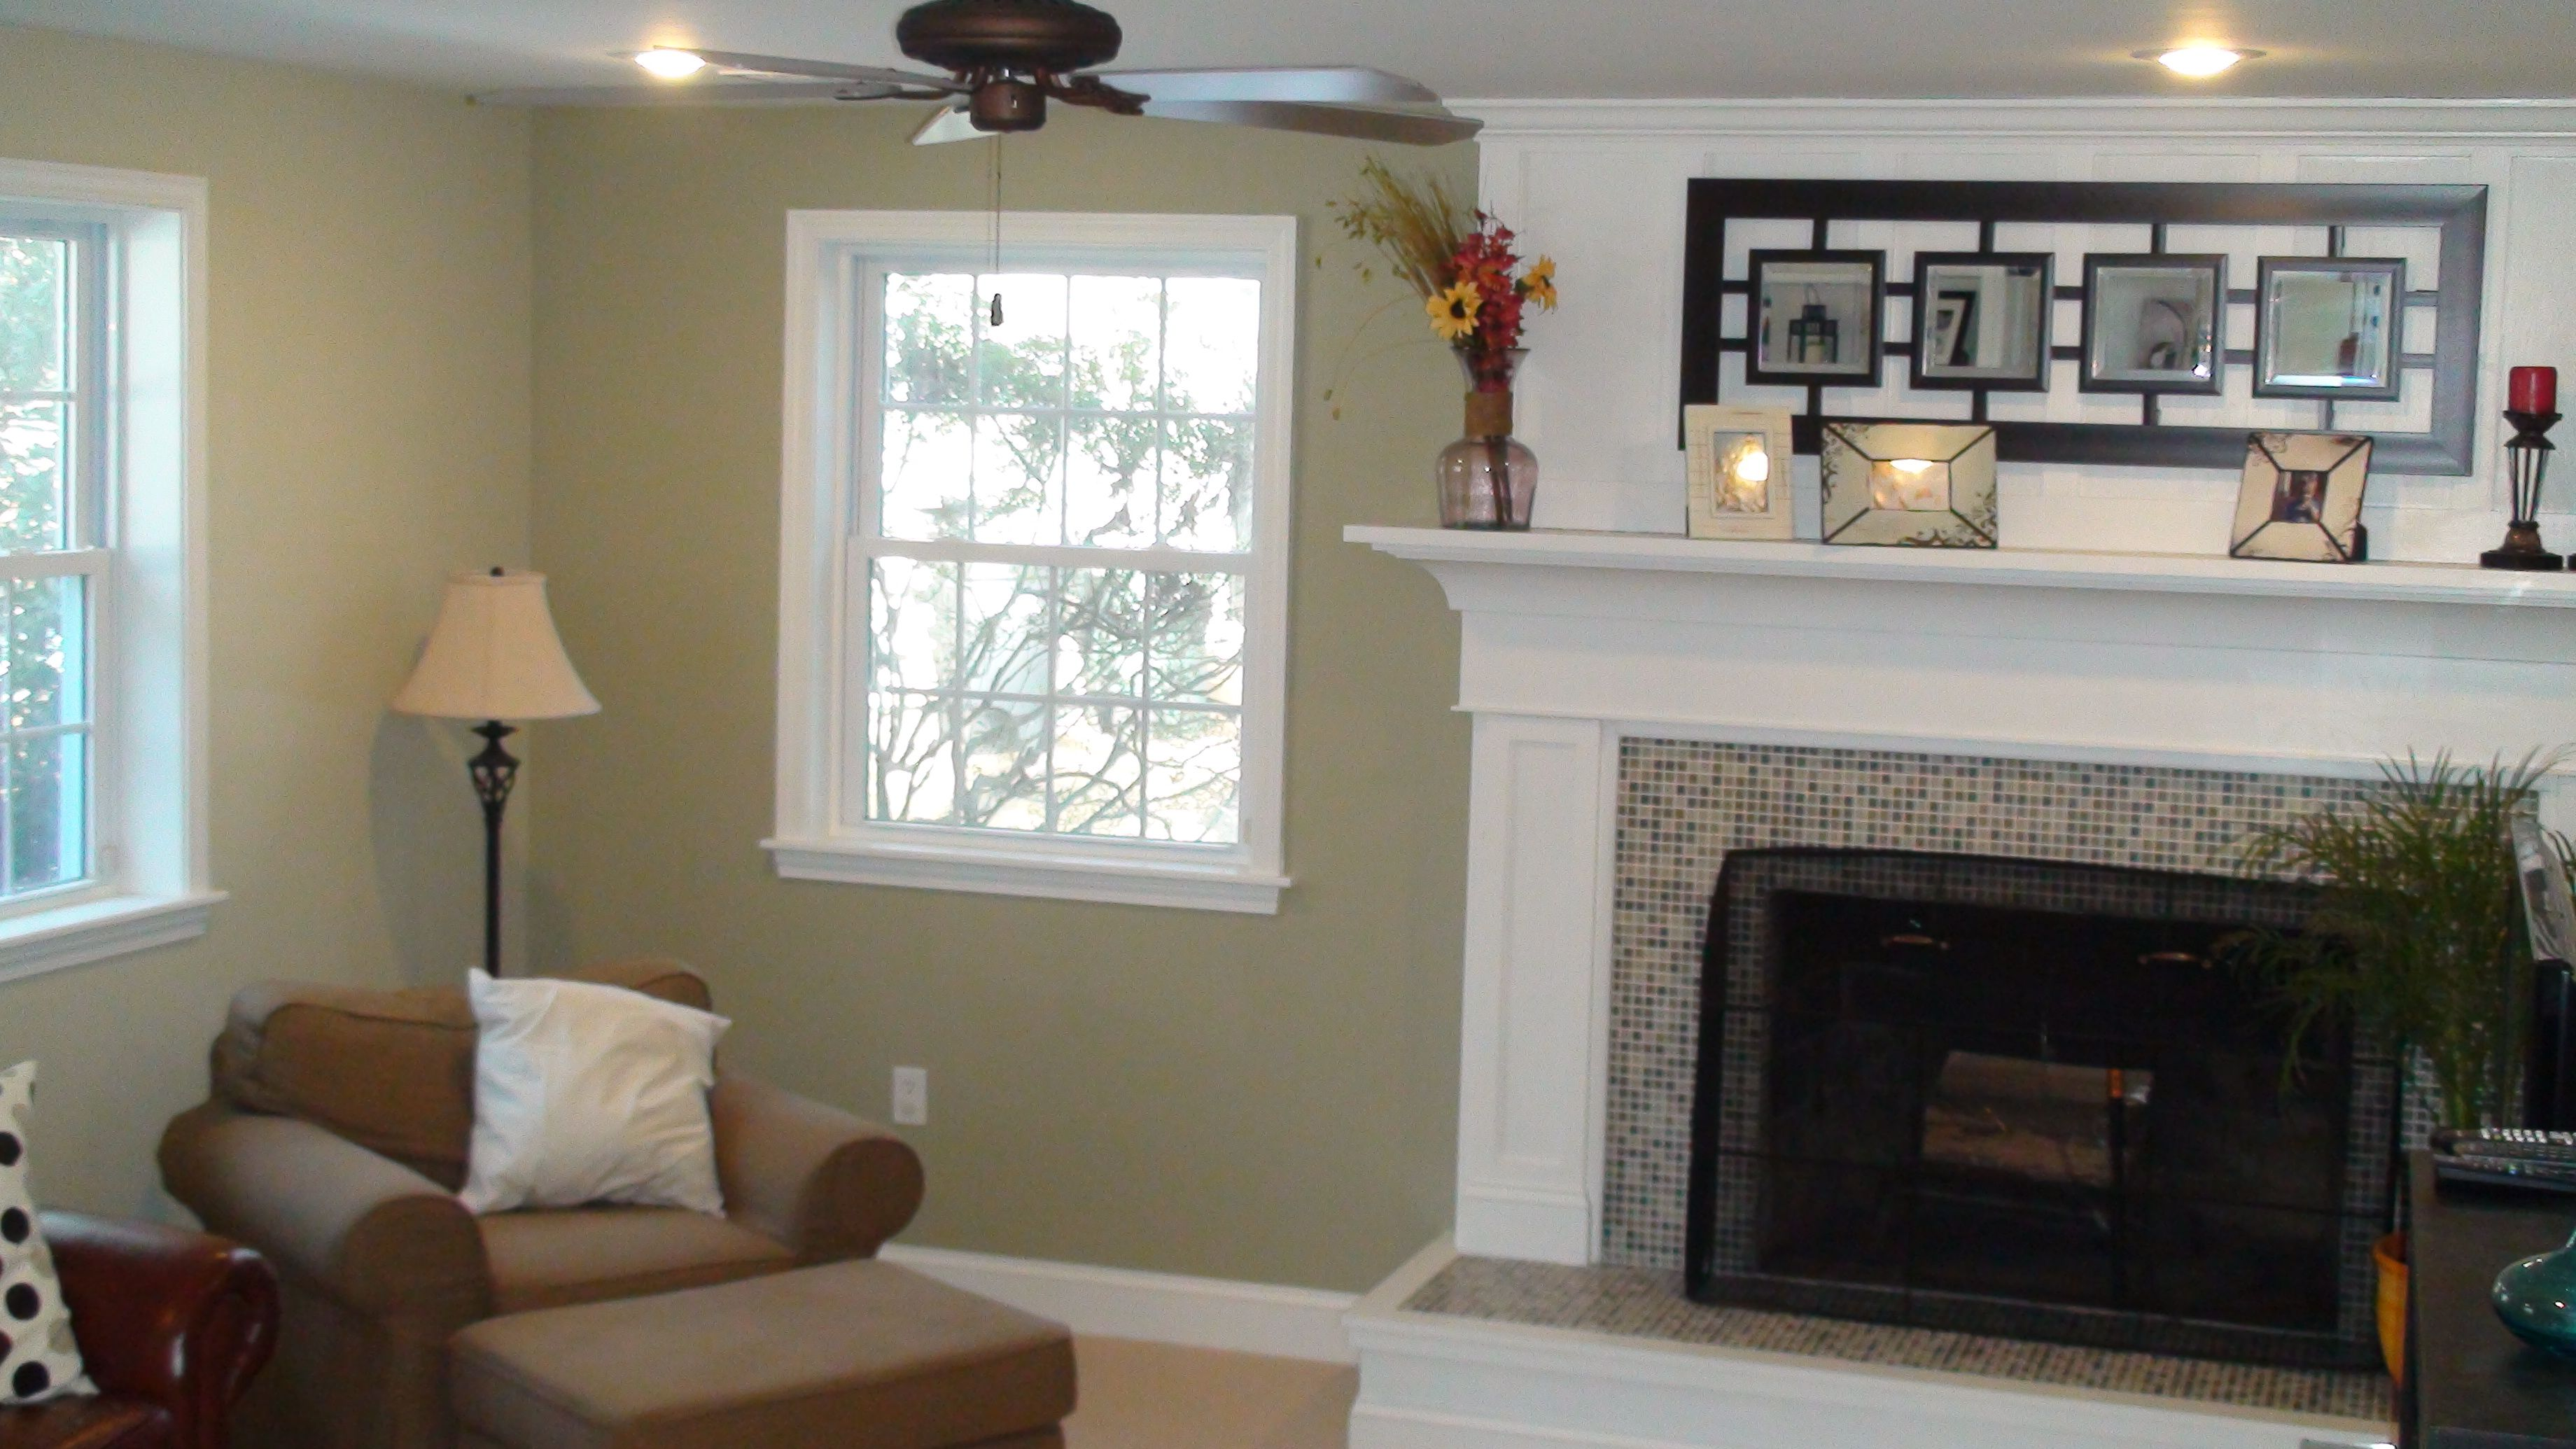 Sherwin Williams Ancient Marble - bedroom, beige with a hint of green.